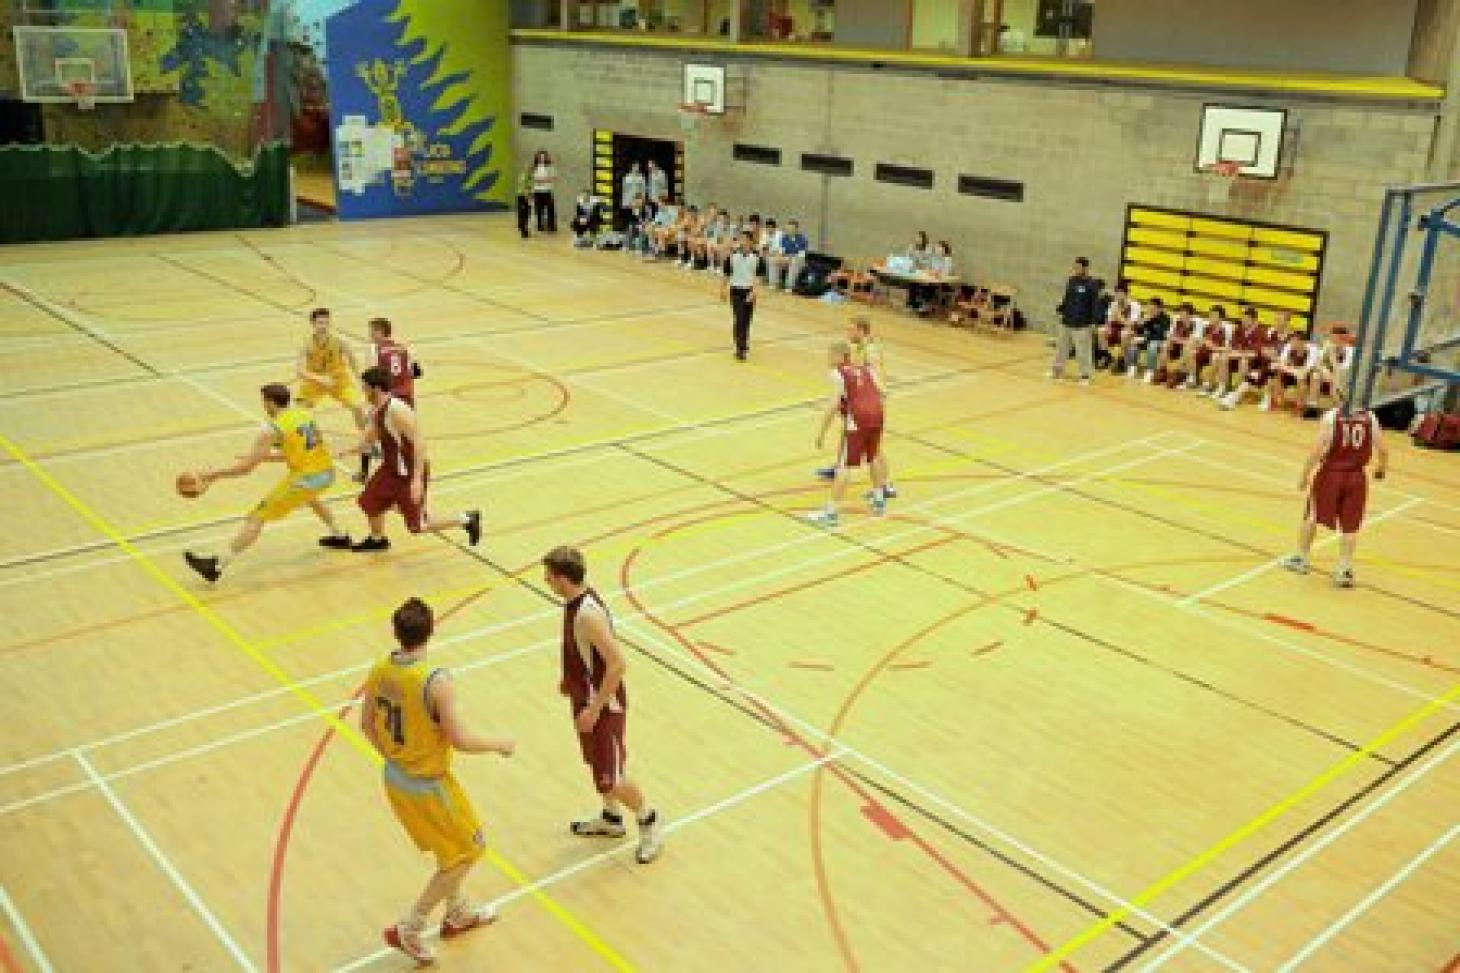 University College Dublin Indoor netball court